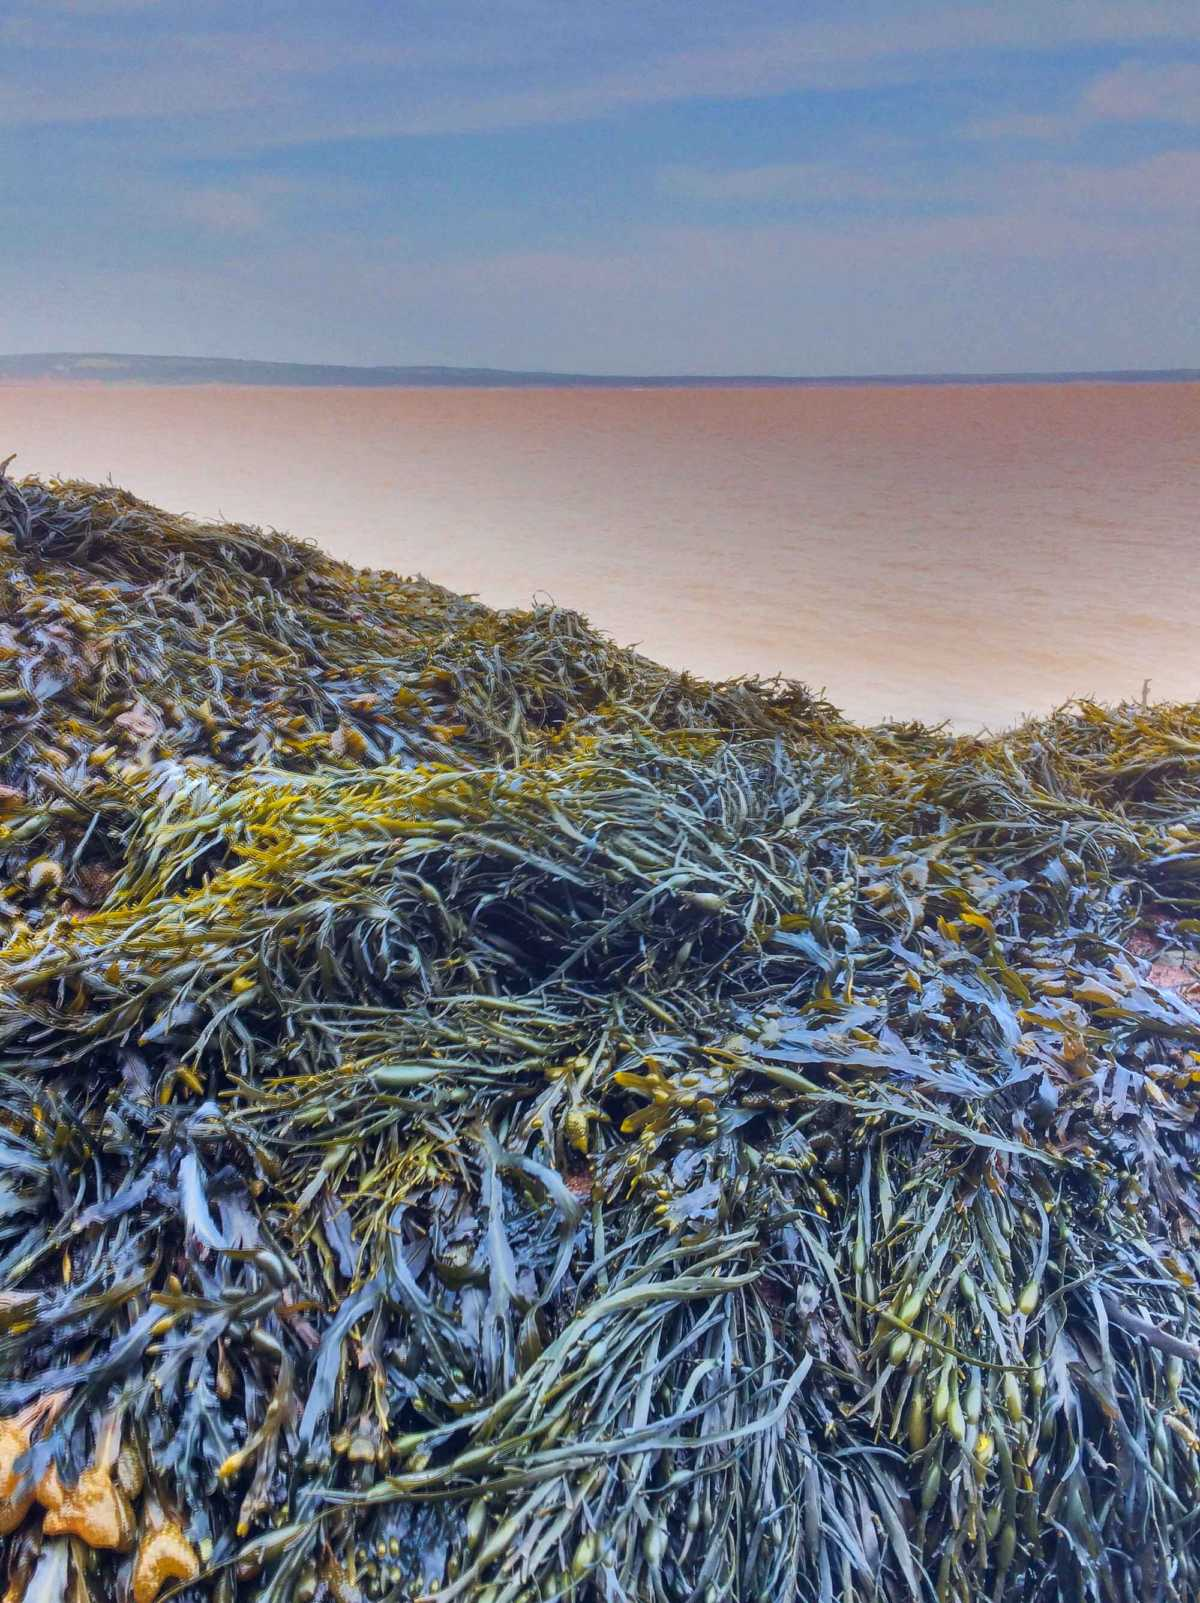 Near Hopewell Rocks, the Bay of Fundy tidal waters stir up the red sandy bottom, while piles of seaweed show yellows and greens under the sun.